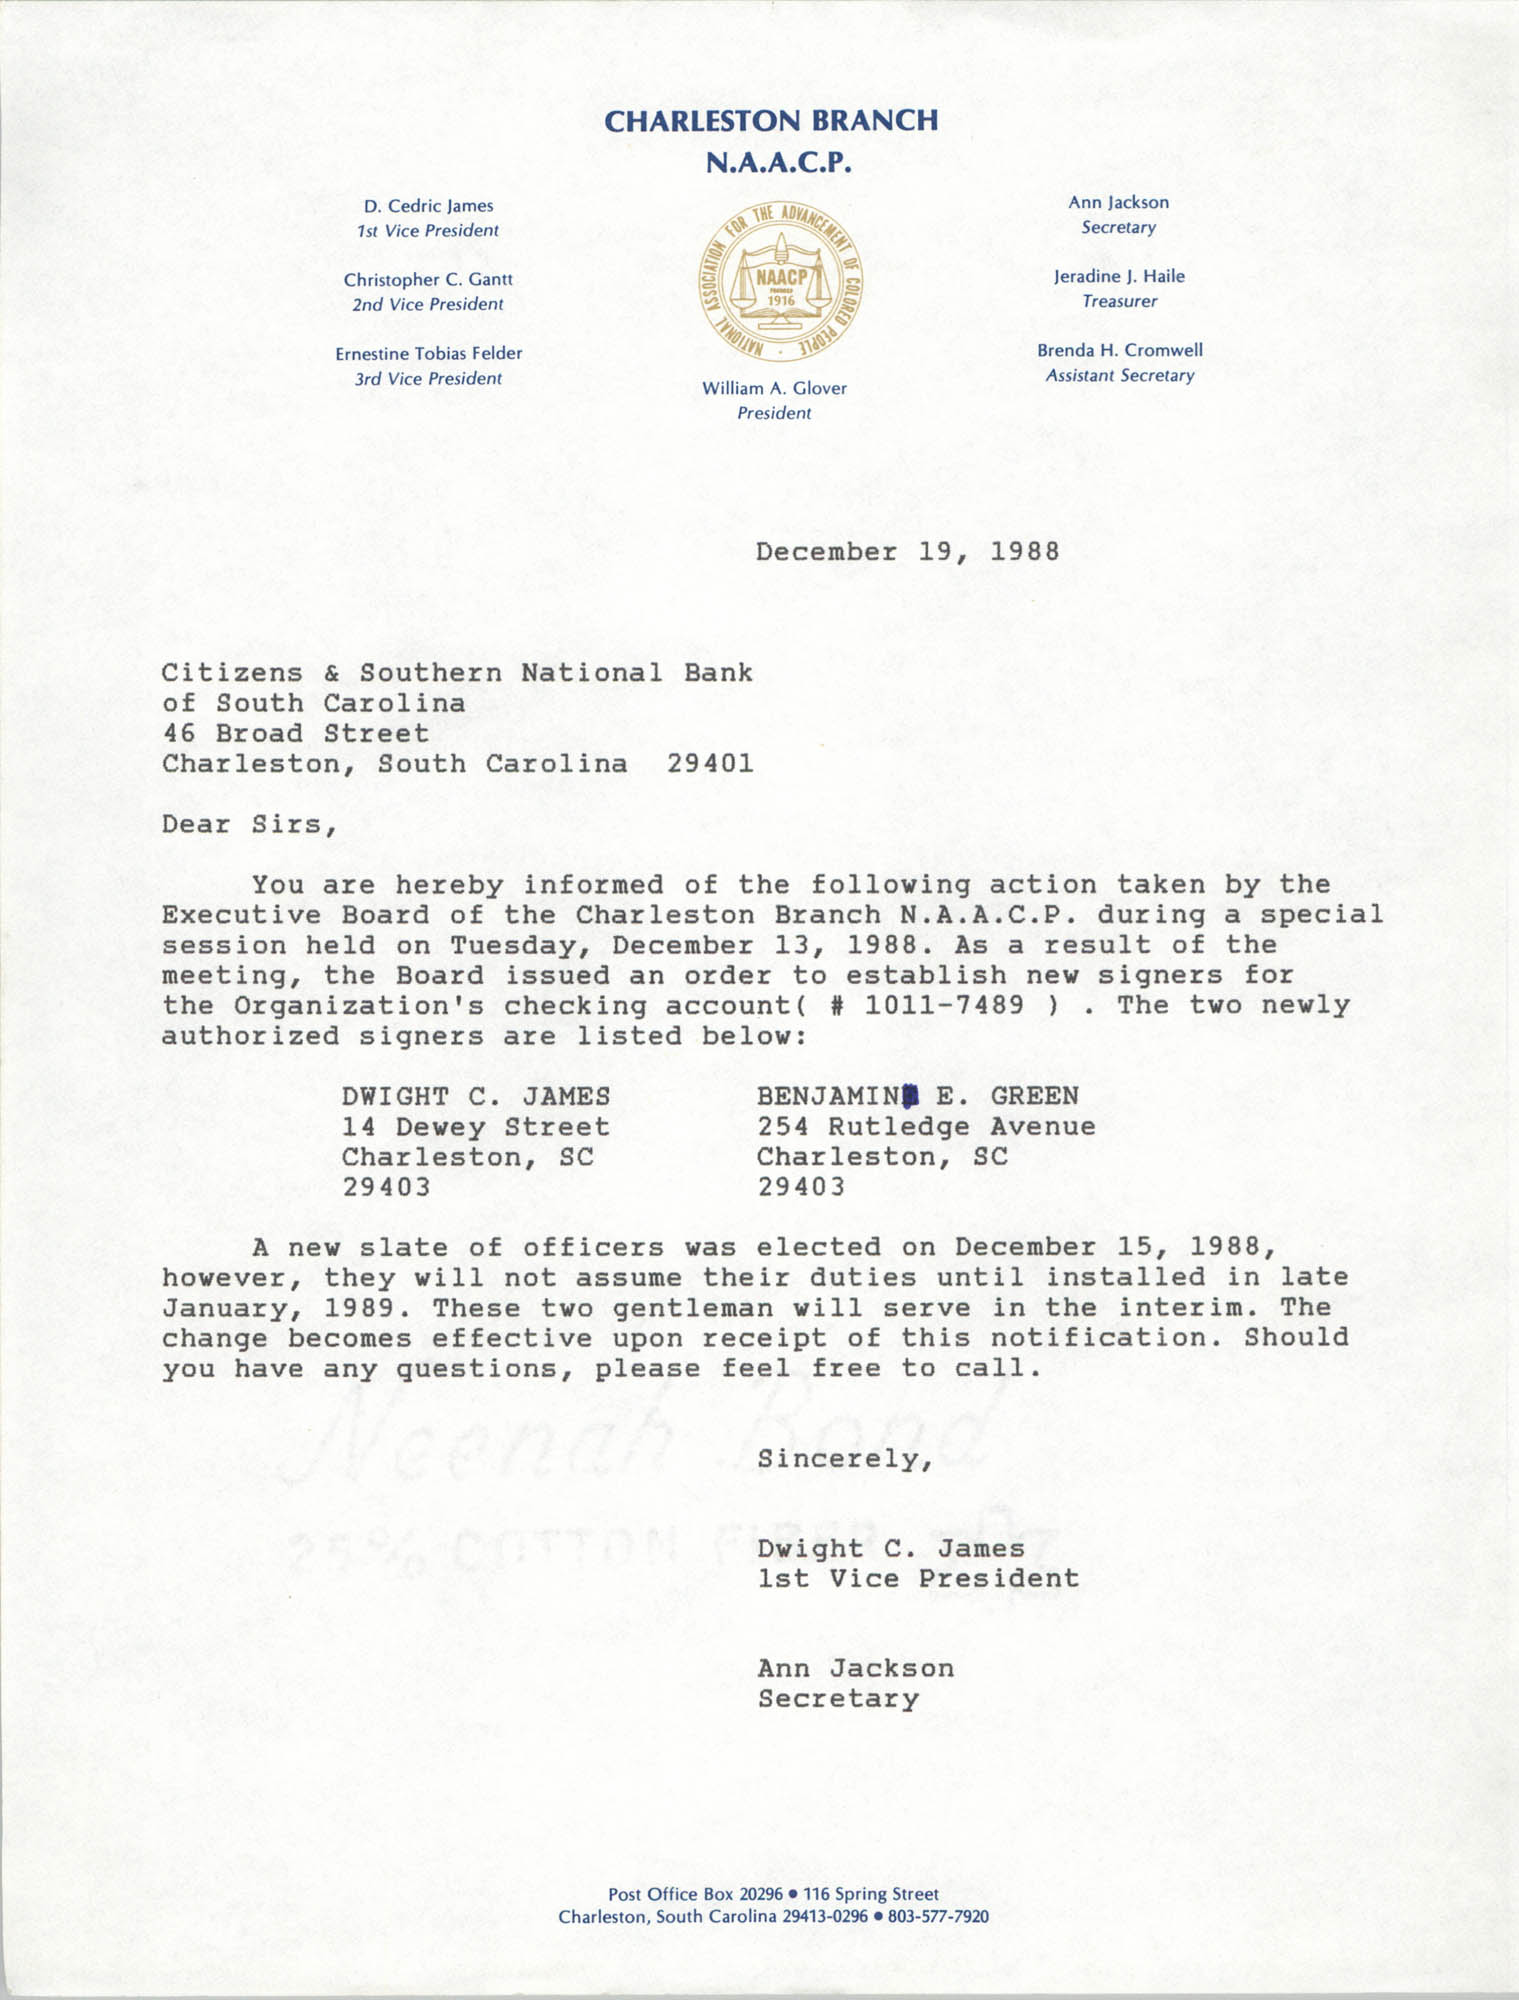 Letter from Dwight C. James and Ann Jackson to Citizens and Southern National Bank, December 19, 1988